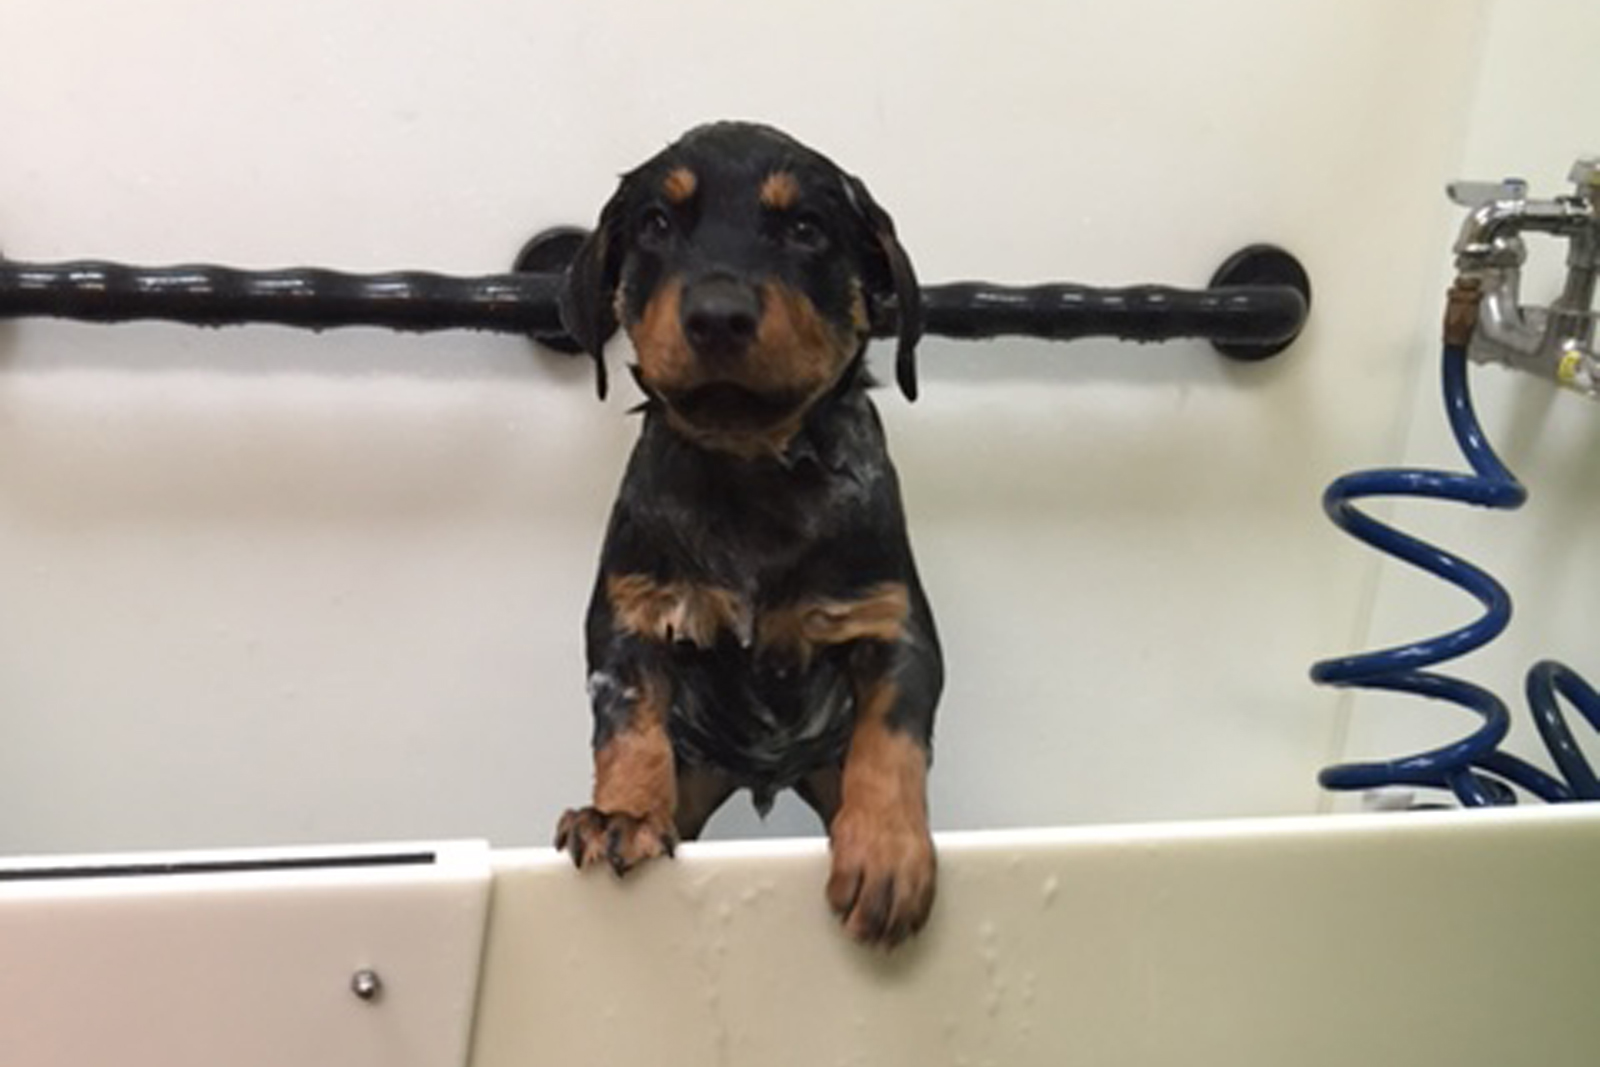 Rottweiler, Spartanburg, South Carolina, Greenville, Dog, Cat, Pets, 4 Paws, Dog Boarding, Cat Boarding, Dog Grooming, Cat Grooming, Doggy Day Care, Dog Treats, Dog Food, Dog Supplies, Dog Bath, Pet Supplies Pet Food